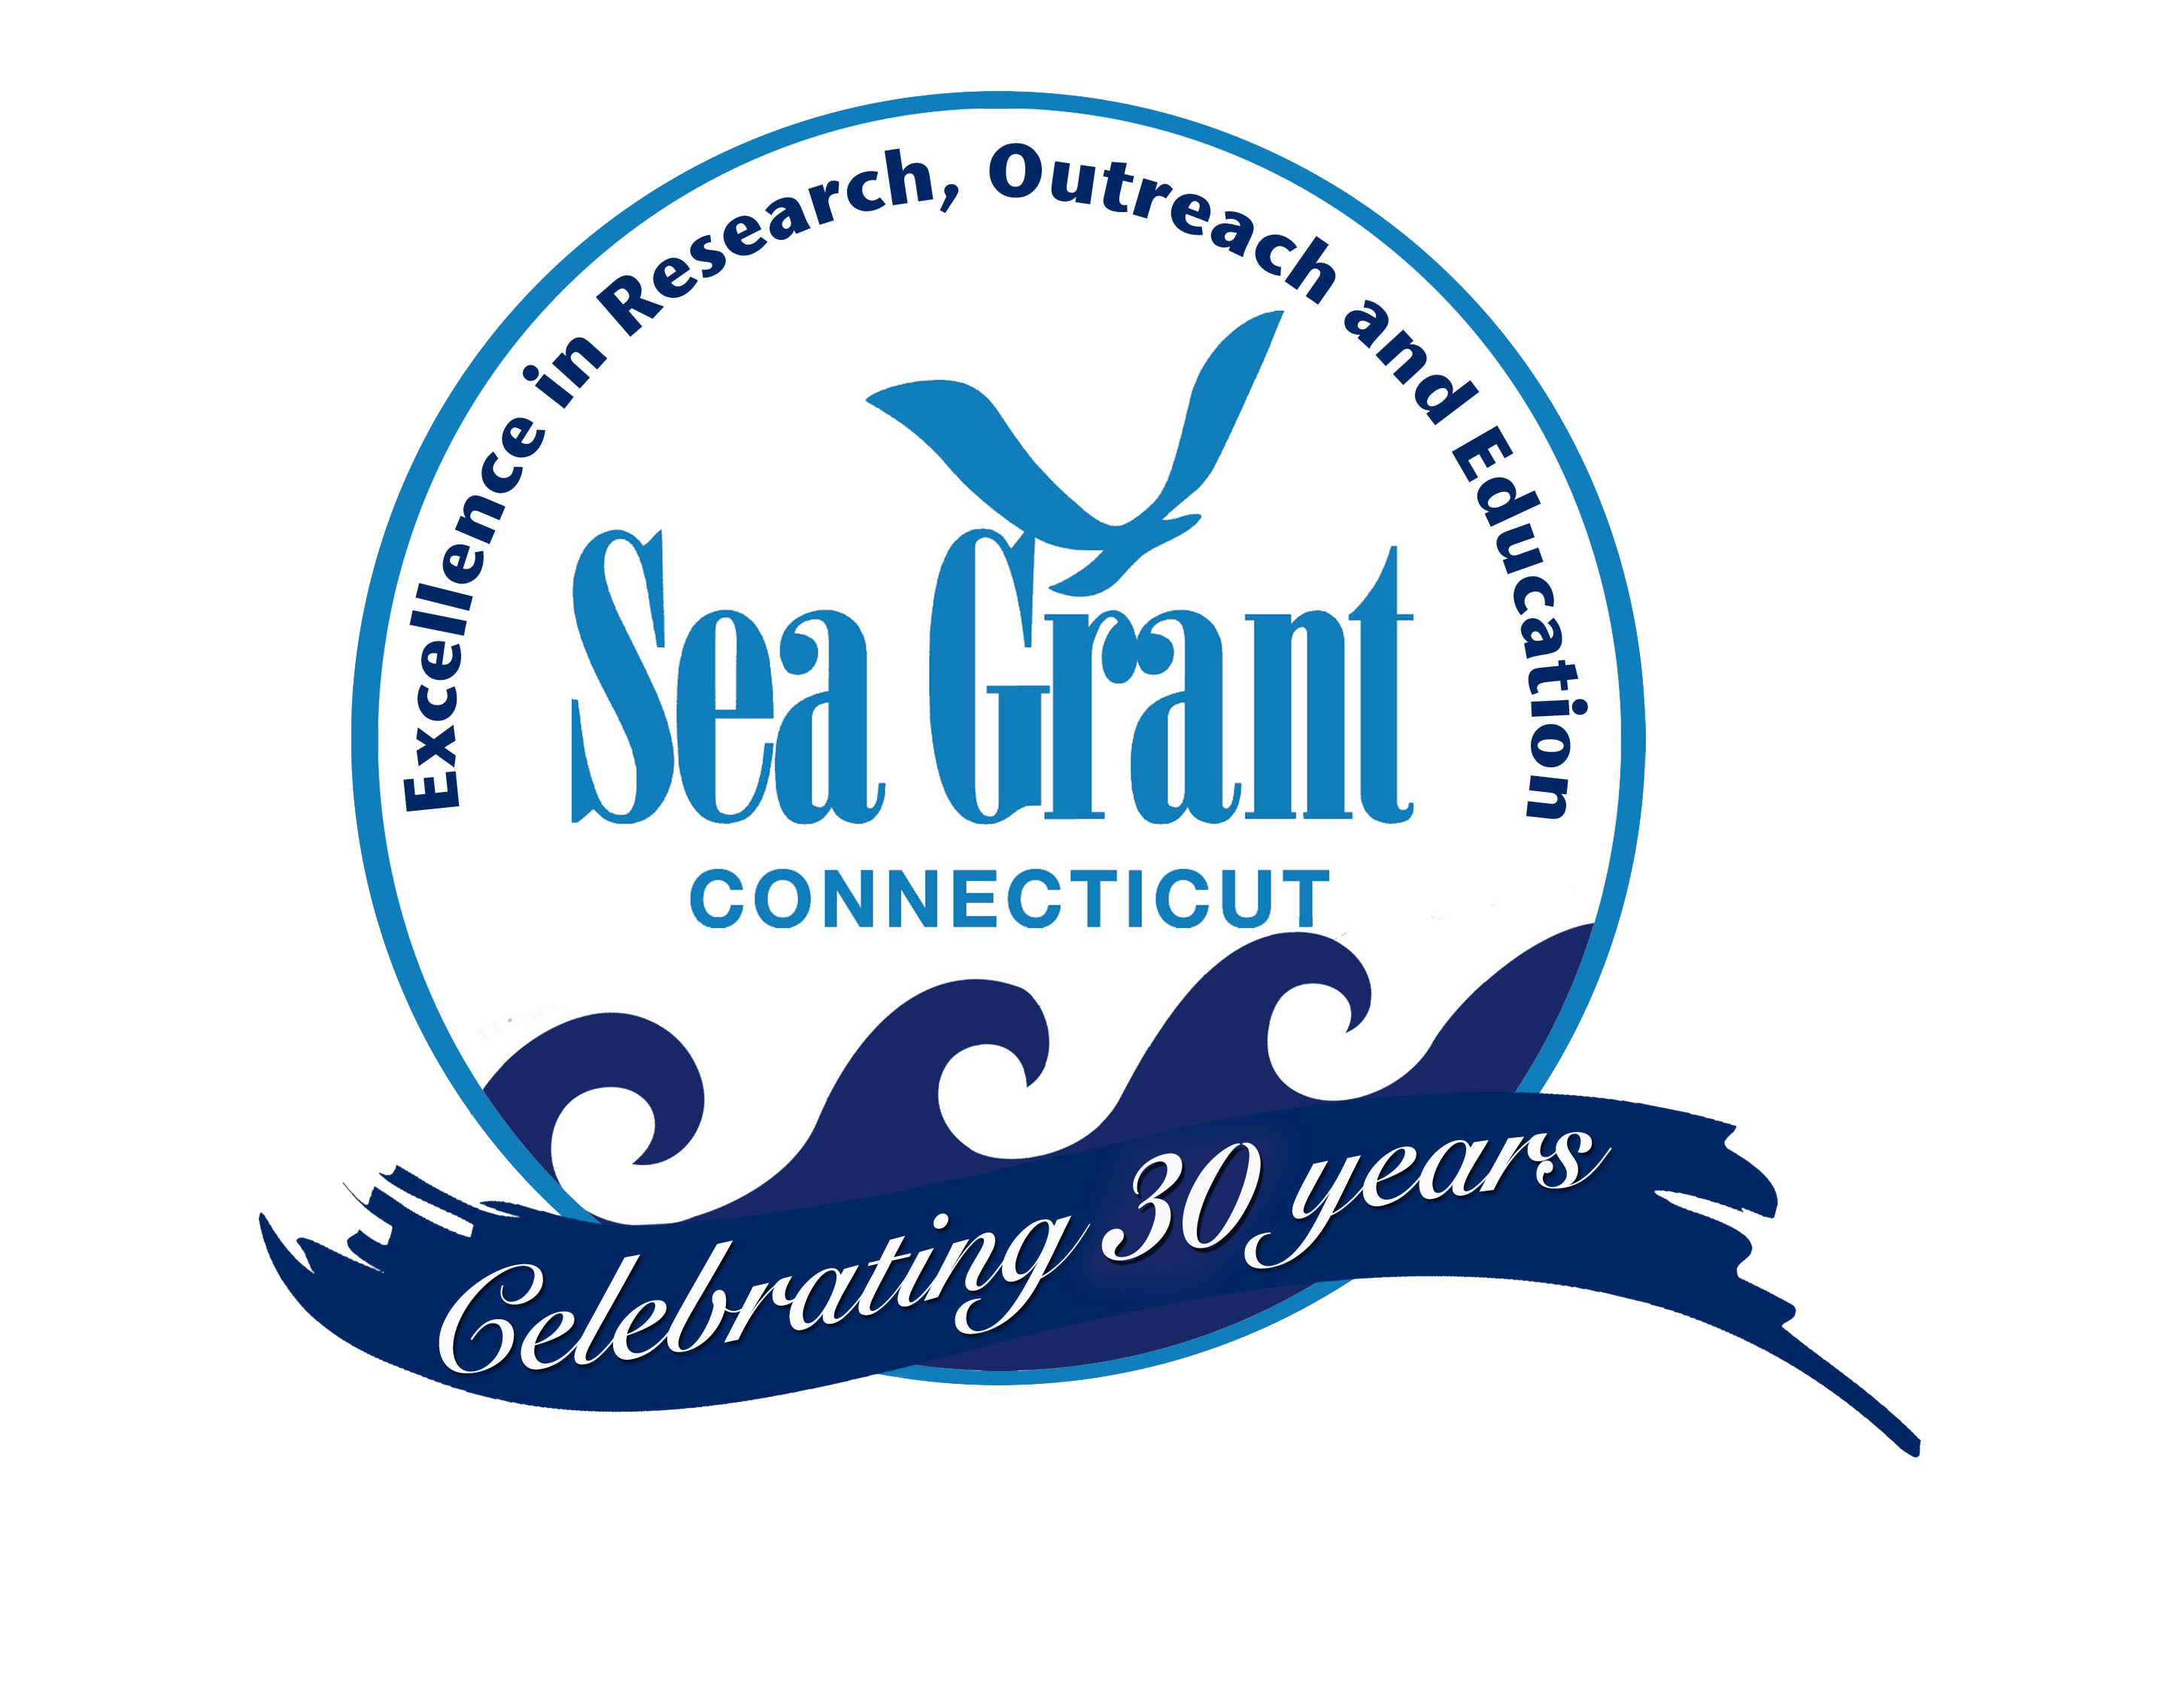 Connecticut Sea Grant 30th Anniversary logo